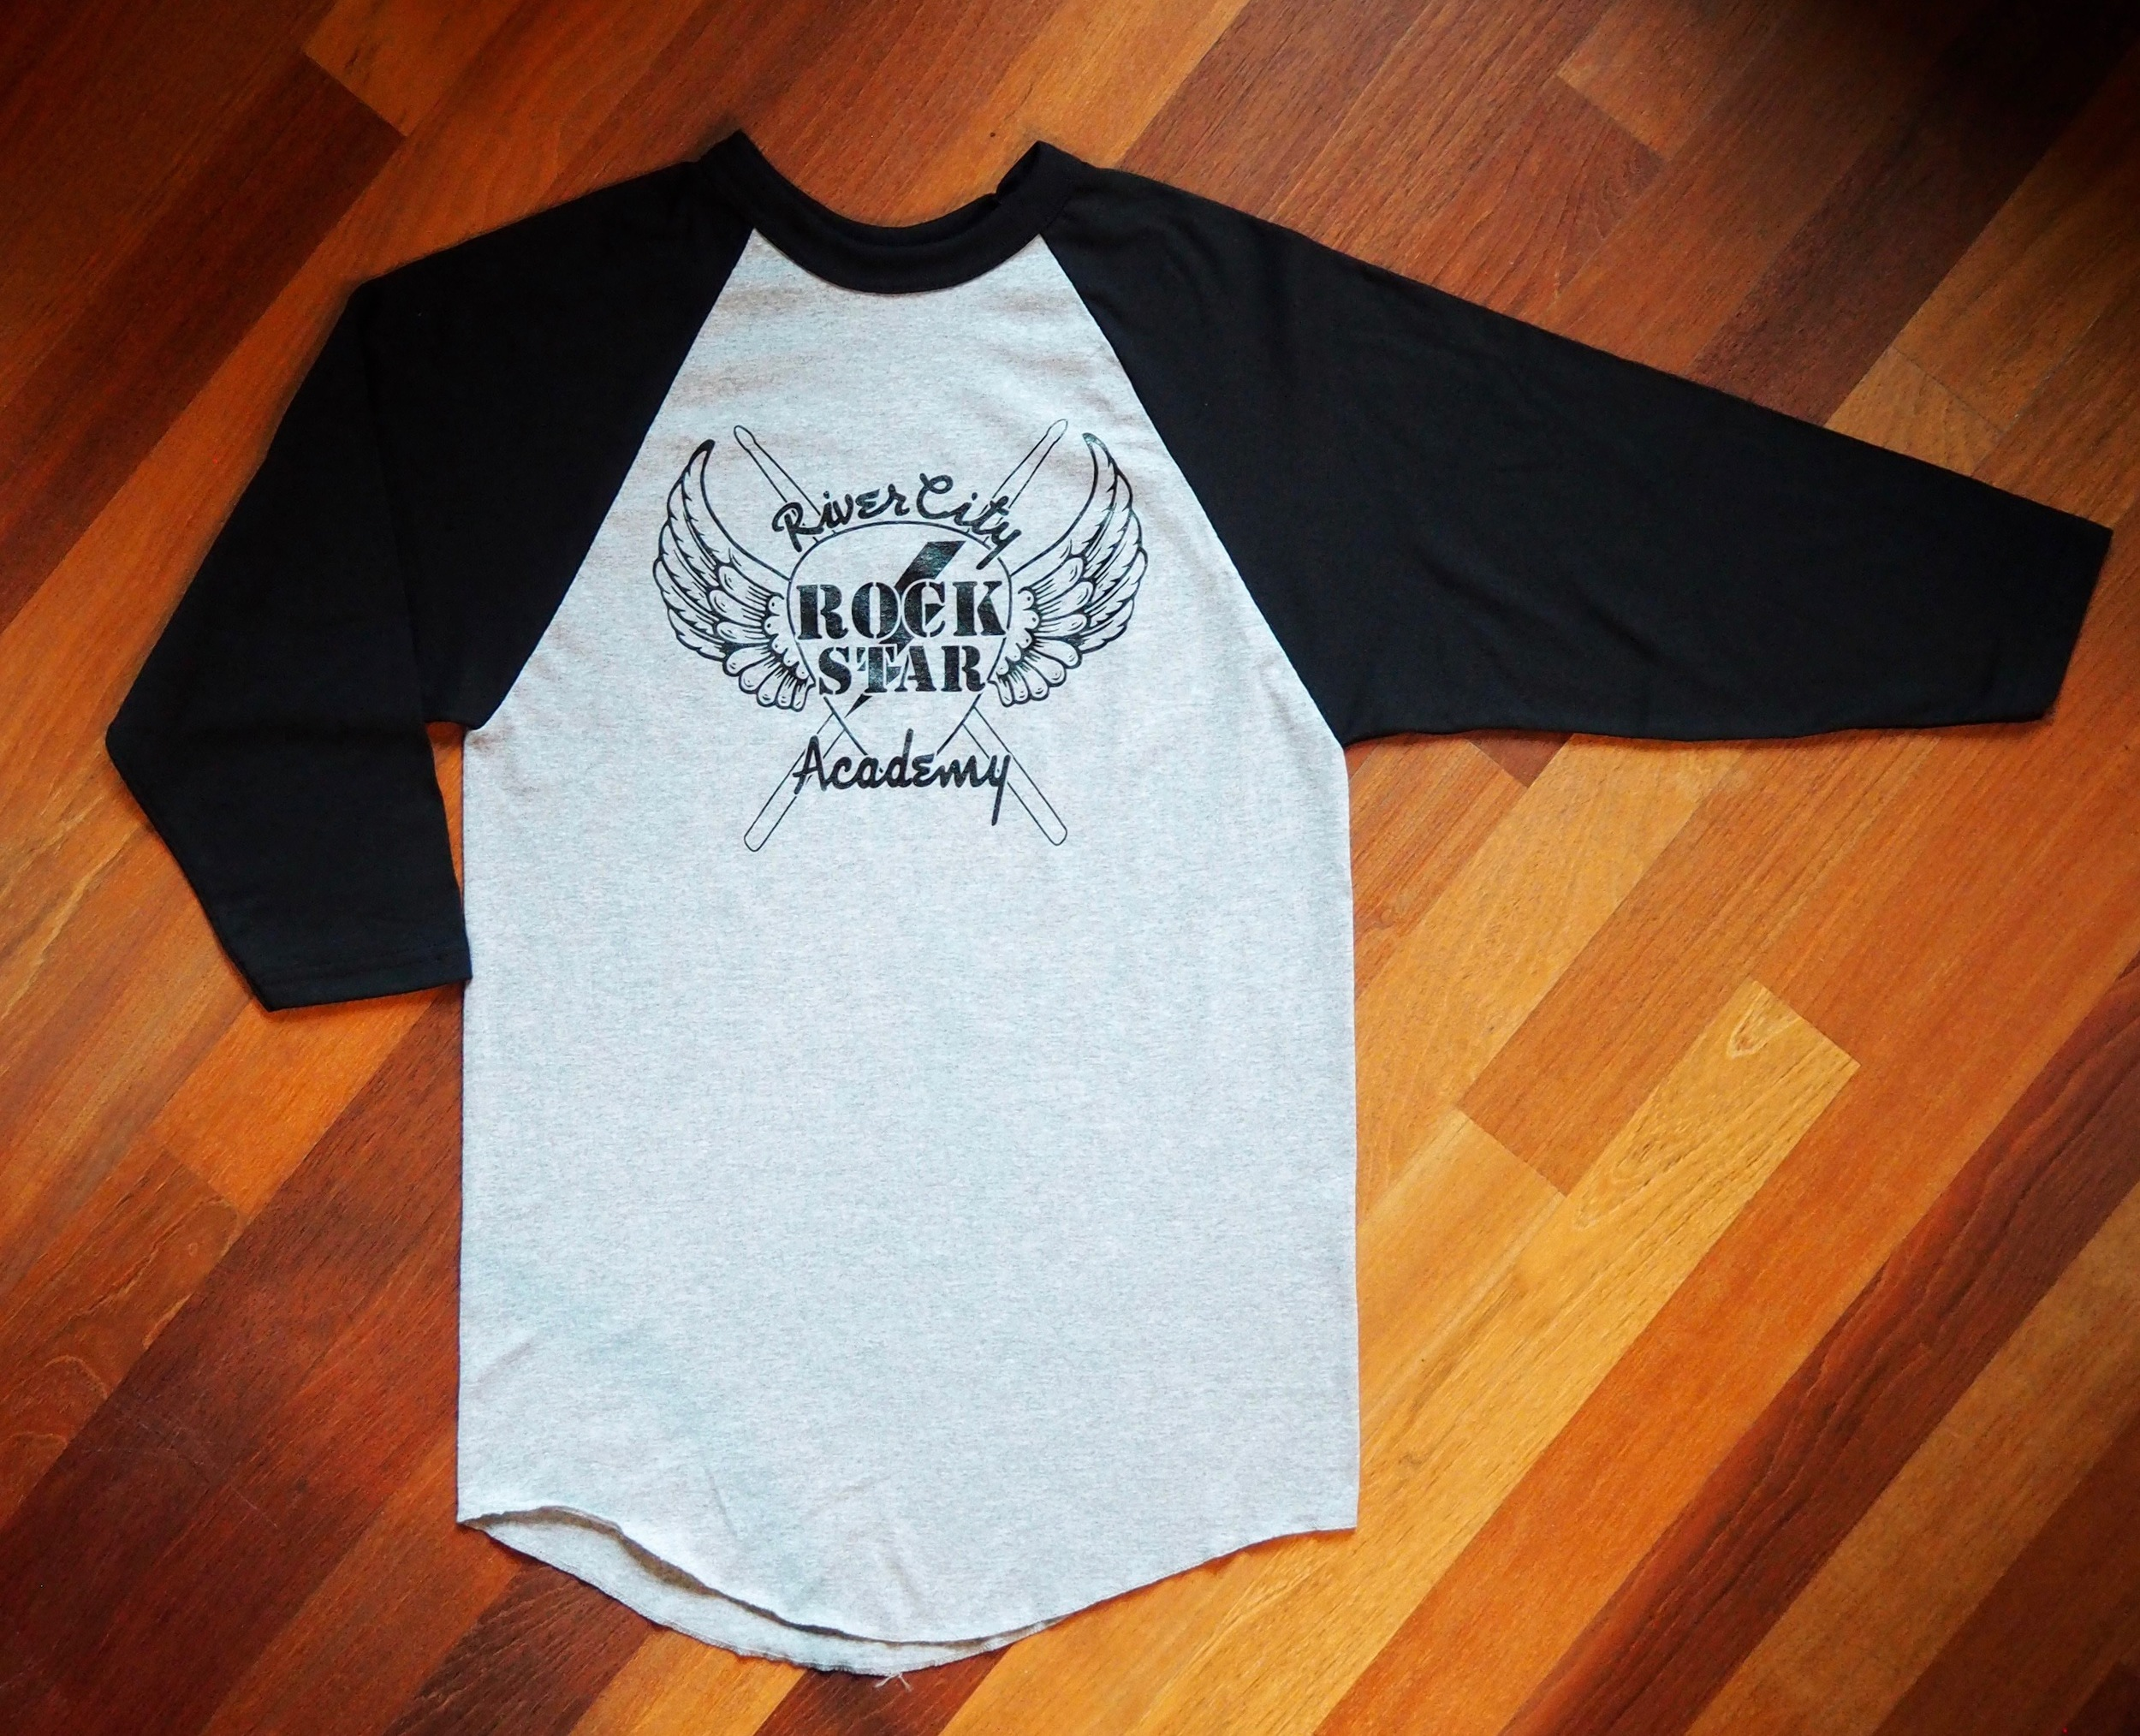 Merch_Unisex Baseball T-shirt_2.jpg